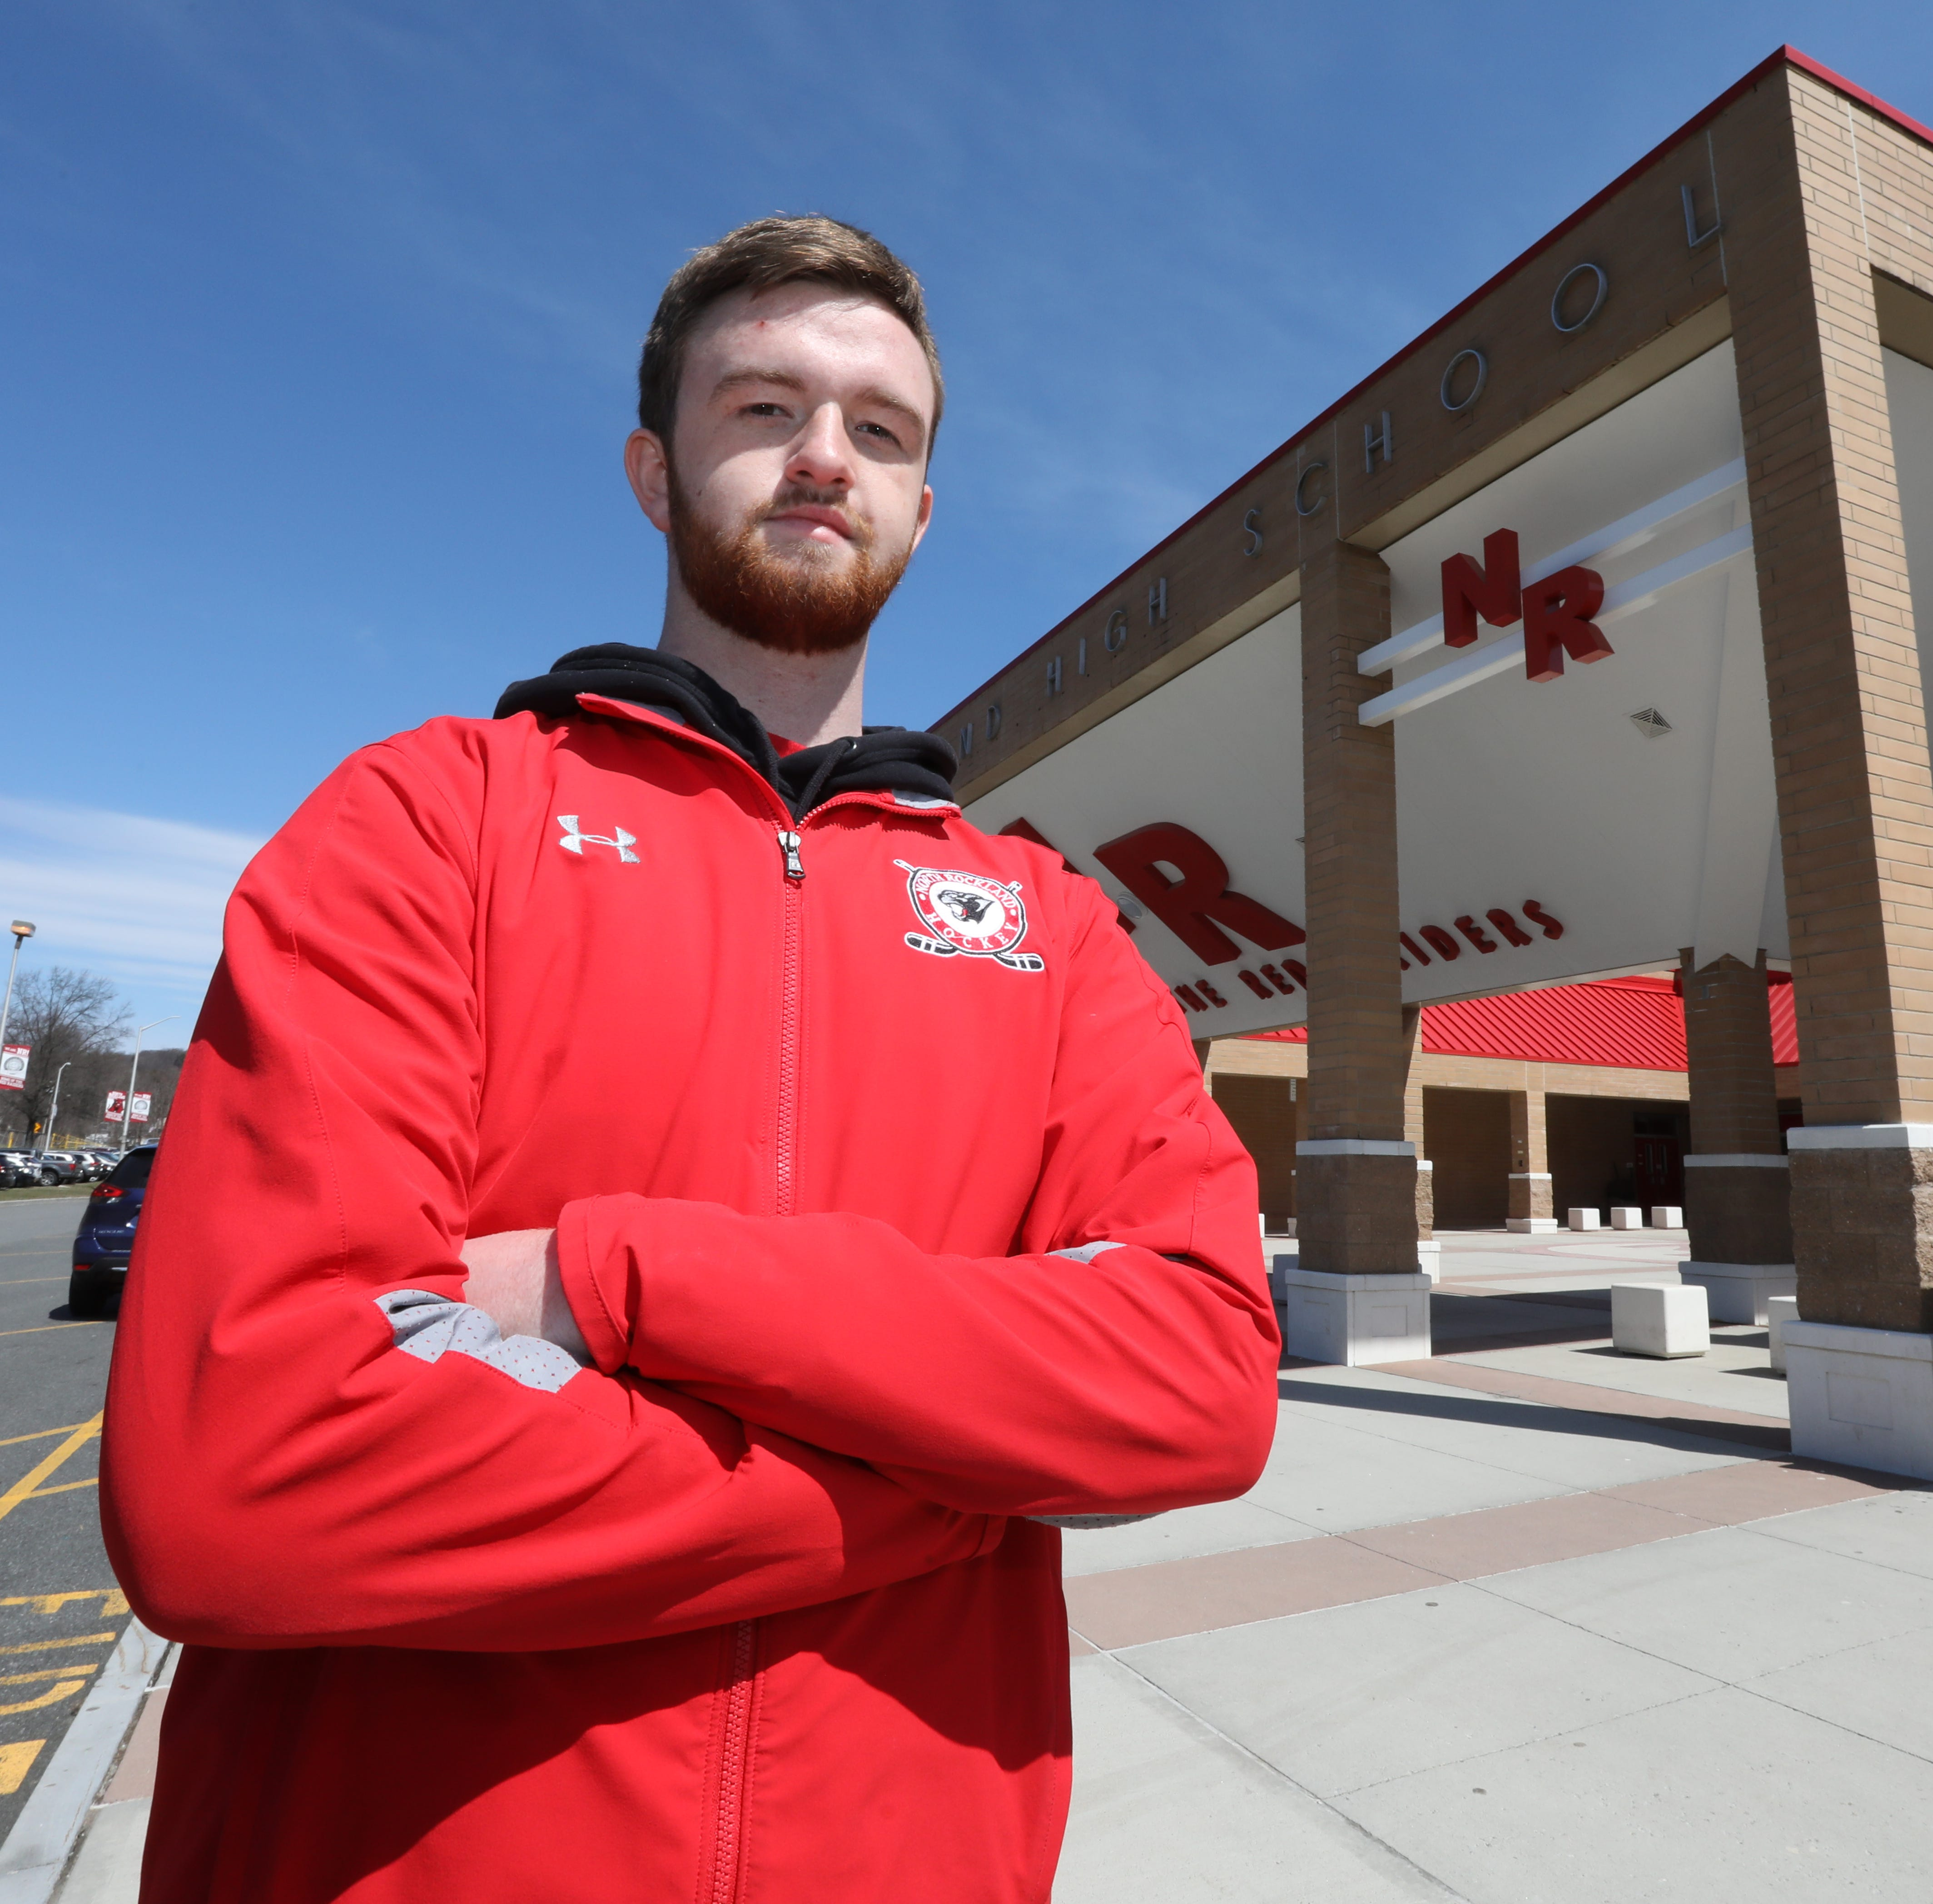 Rockland Scholar-Athlete: North Rockland's Connor Frawley made the right decision